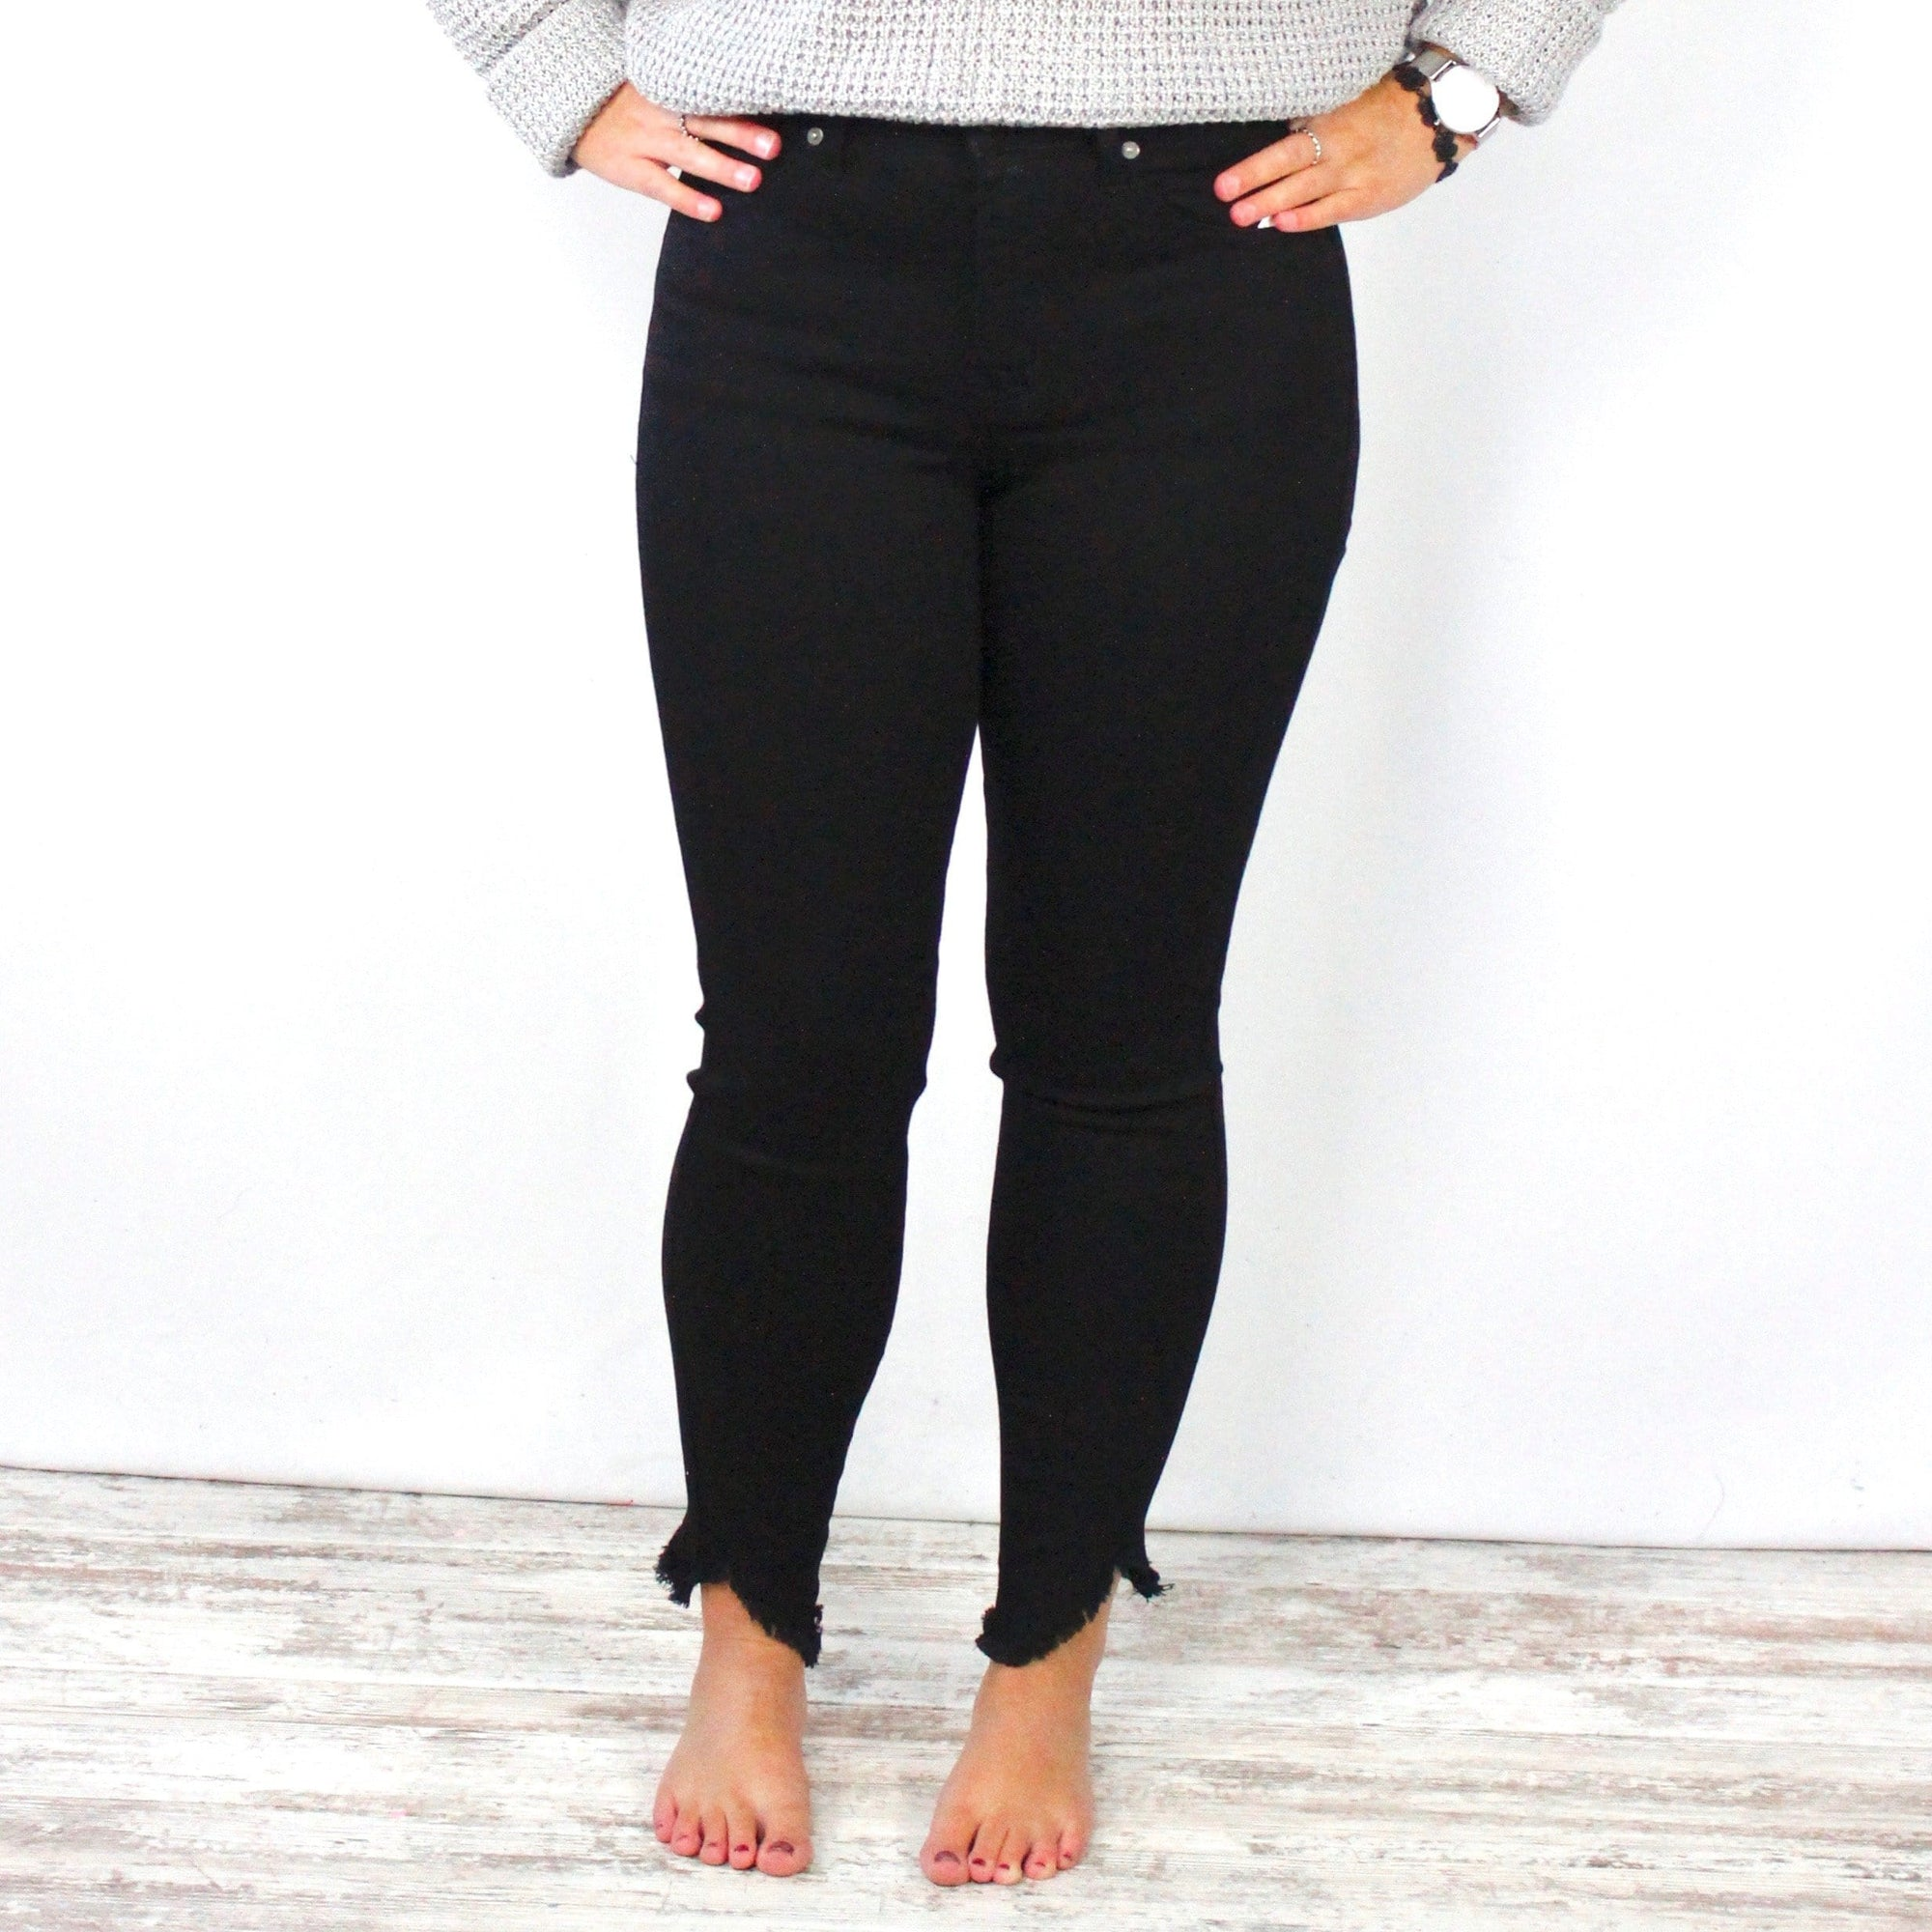 Dayana Black High Rise Skinny Jean